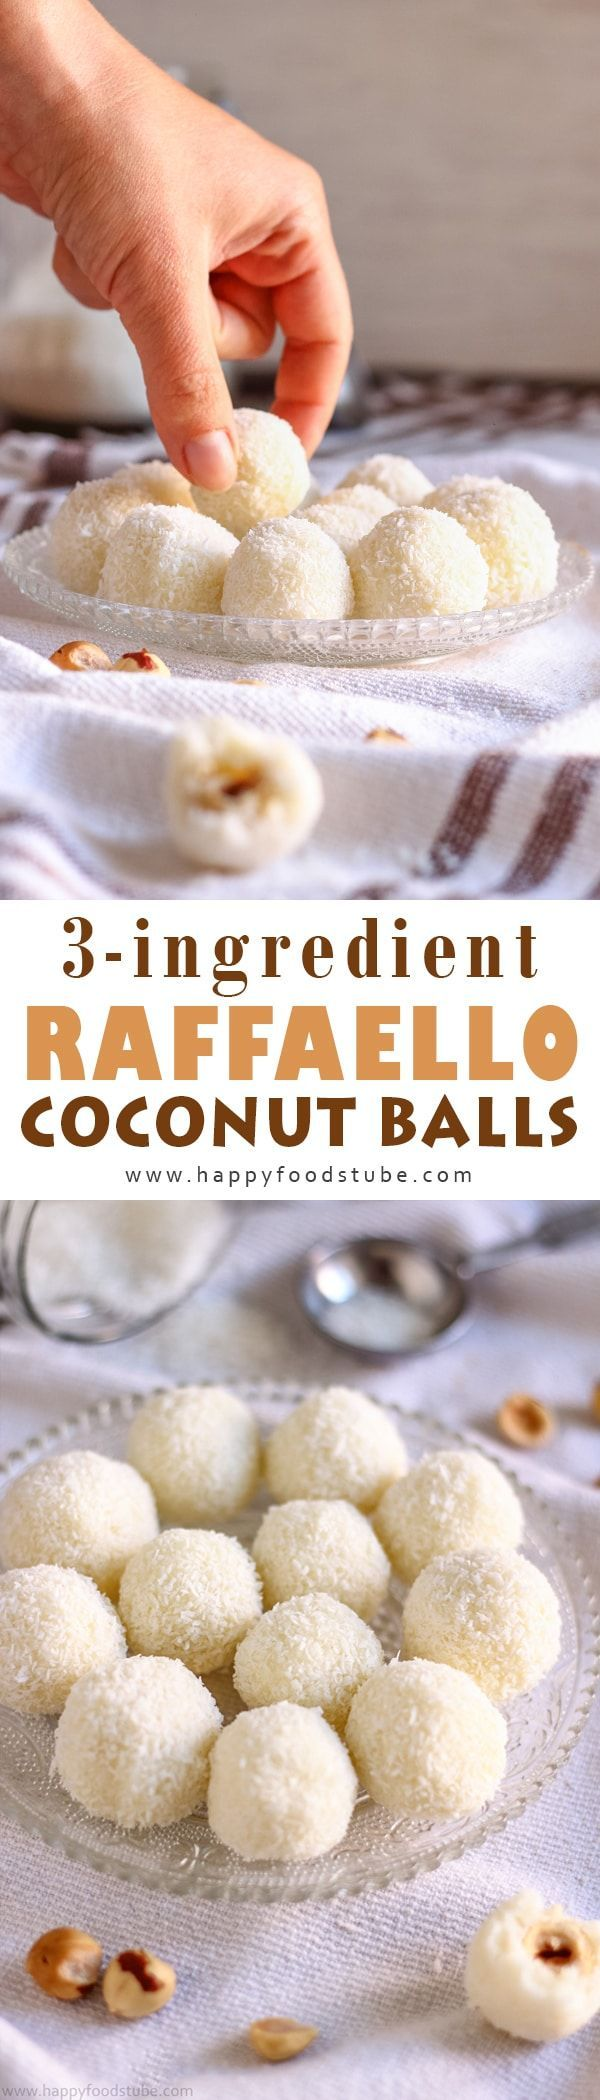 3-Ingredient Raffaello Coconut Balls make the perfect gift for your loved ones. They are no bake & ready in 15 minutes. Family favorite recipe you can make with your kids via @happyfoodstube